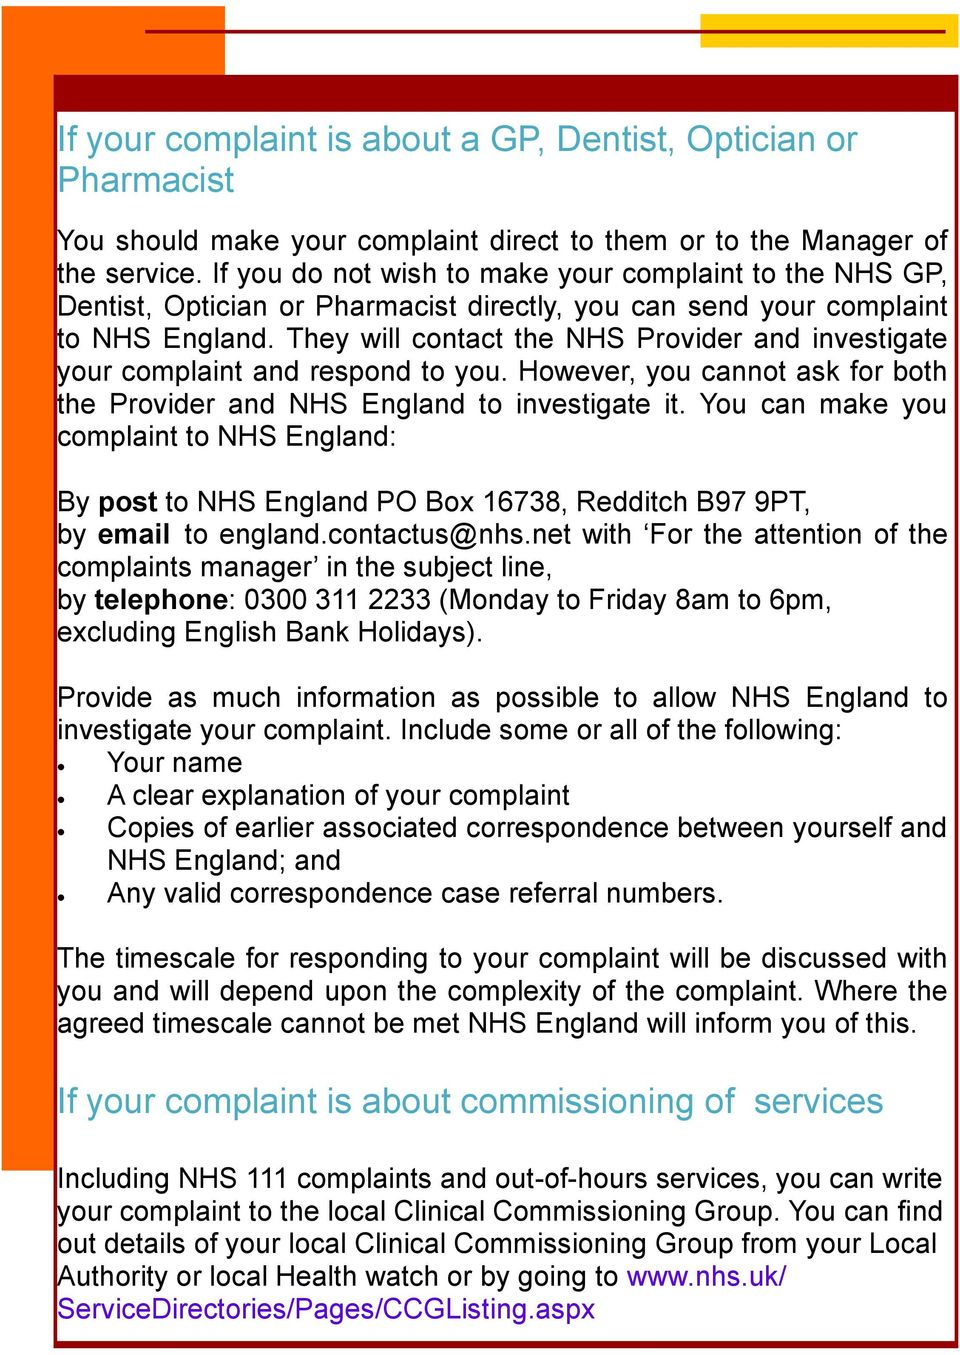 They will contact the NHS Provider and investigate your complaint and respond to you. However, you cannot ask for both the Provider and NHS England to investigate it.